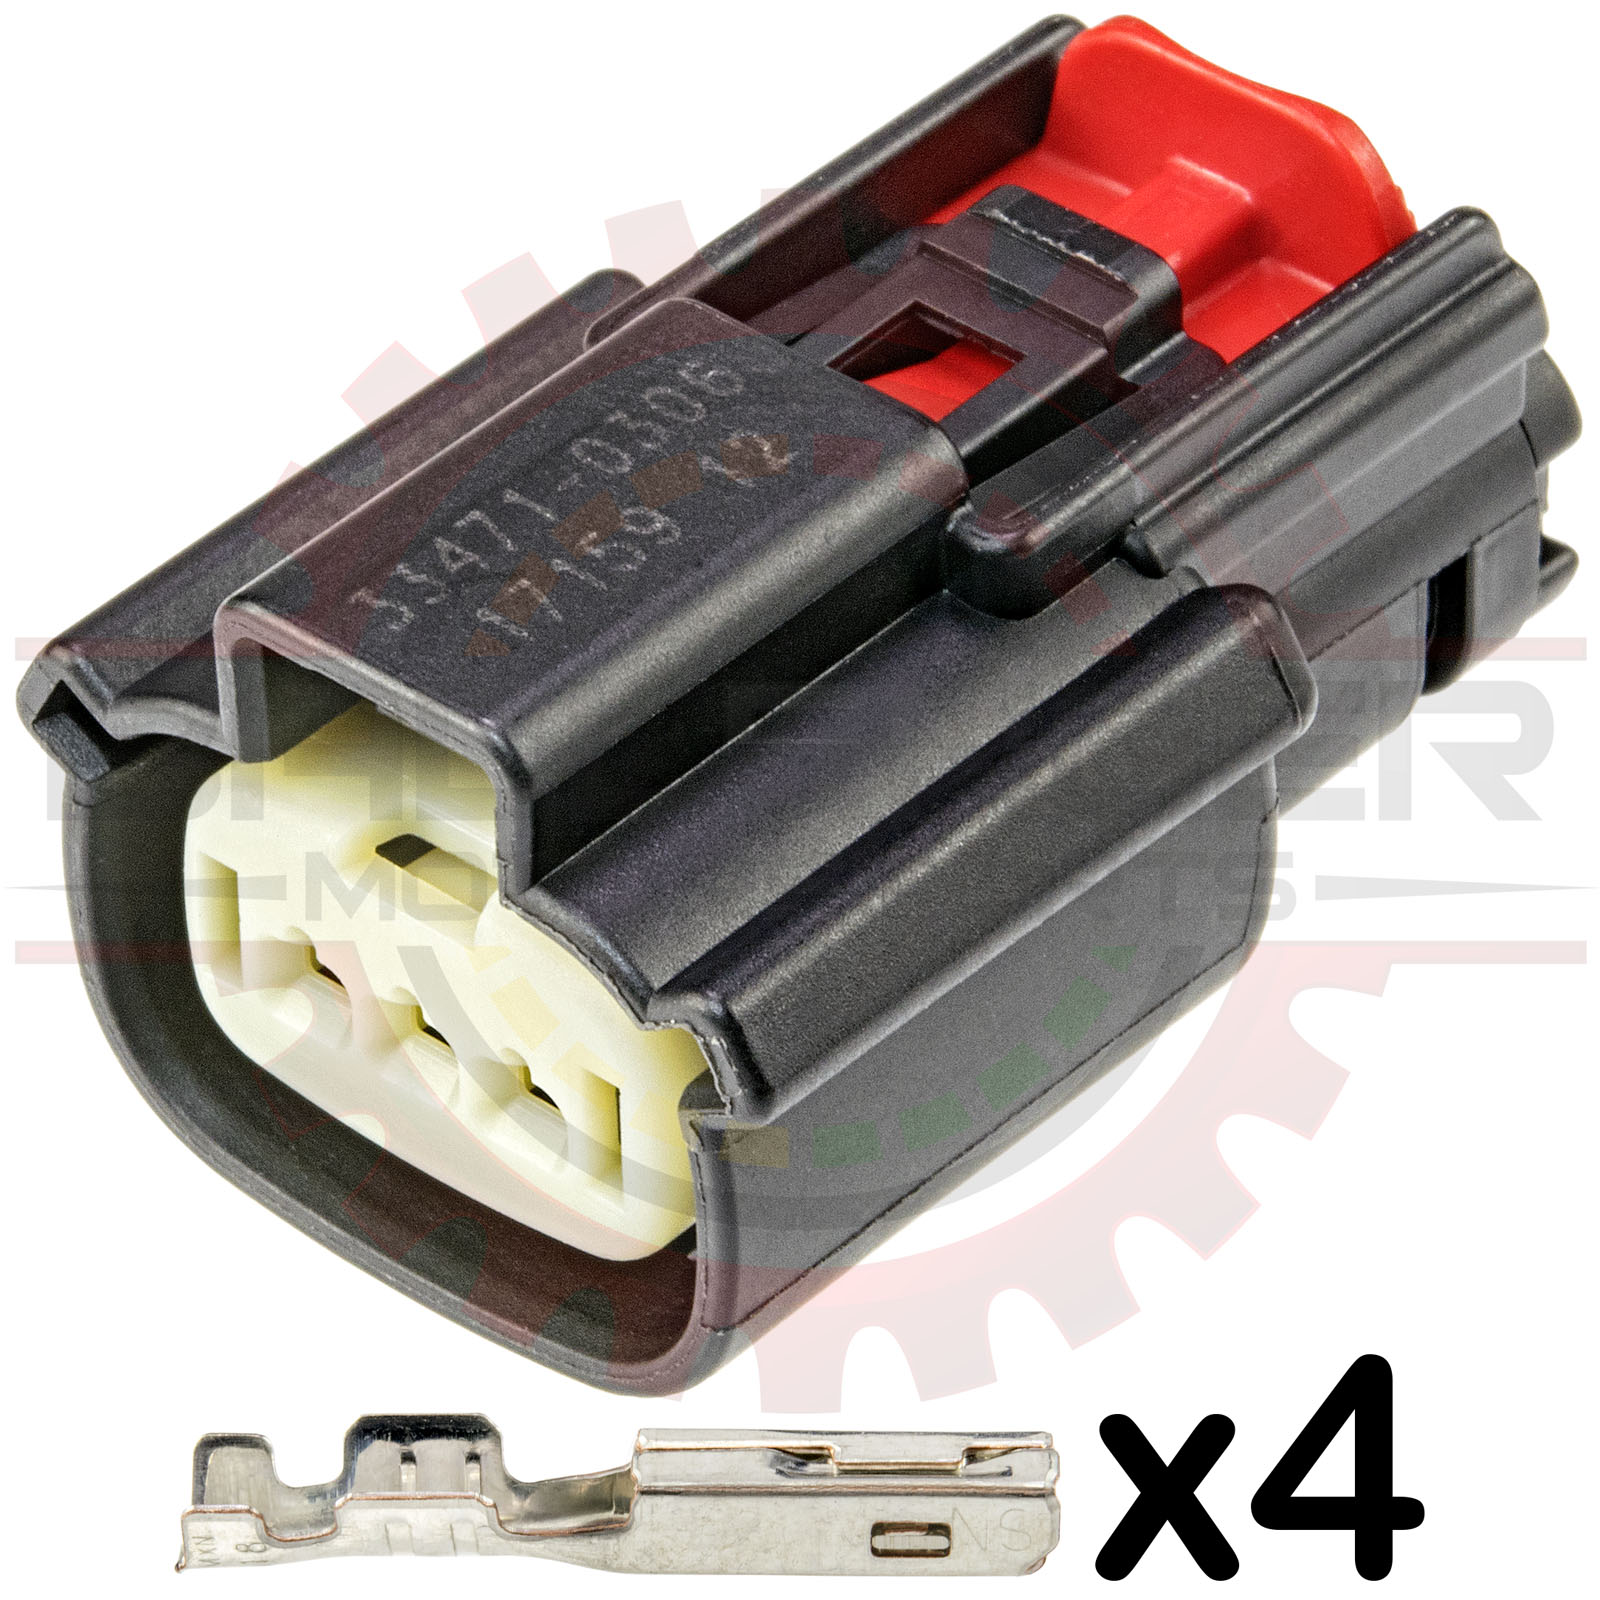 Home Shop Connectors Harnesses Ford Epc 3 Way Interceptor Utility Wiring Harness Kits Mazda Ignition Coil Sensor Connector Kit